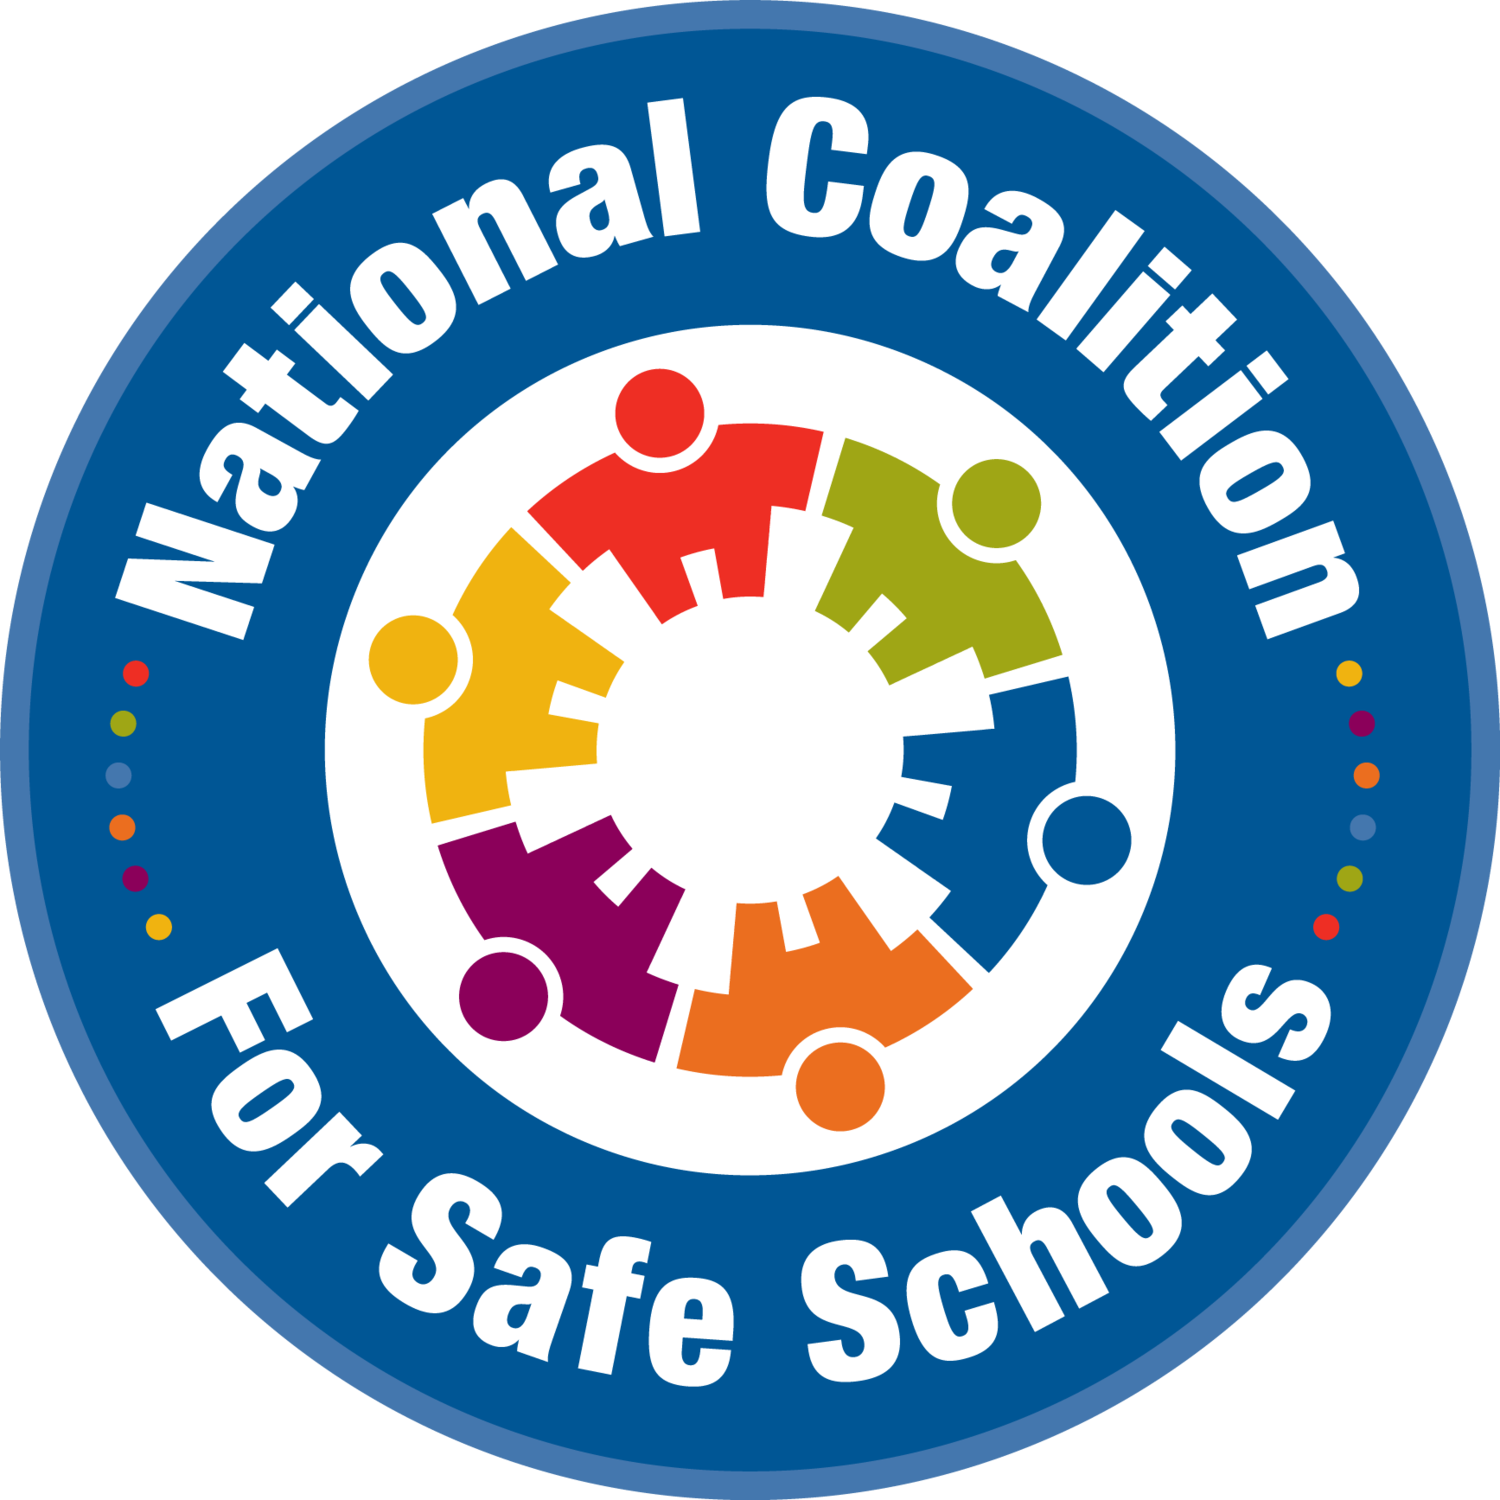 National Coalition for Safe Schools